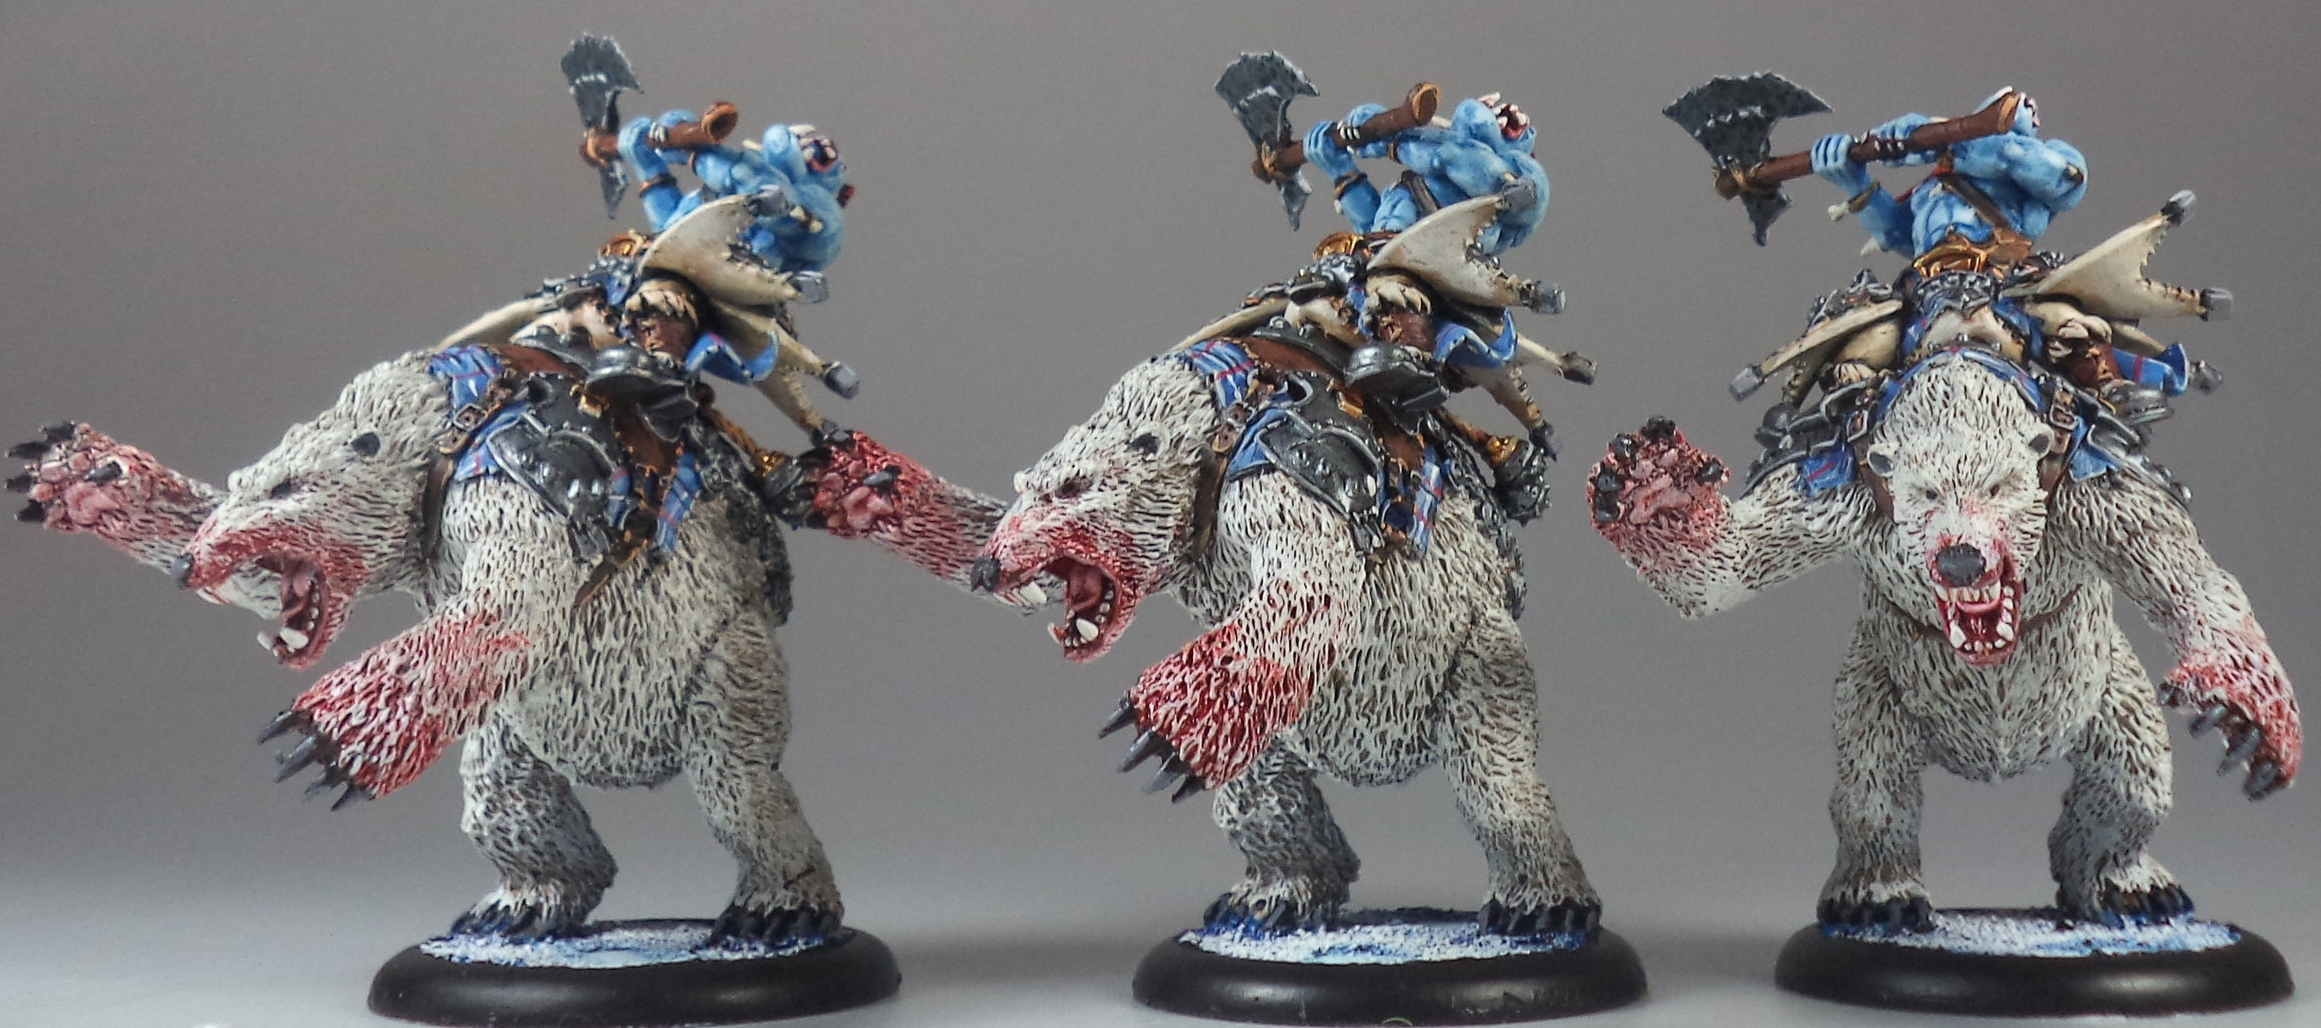 Paintedfigs miniature painting service-KO-Ice Orcs (15).jpg